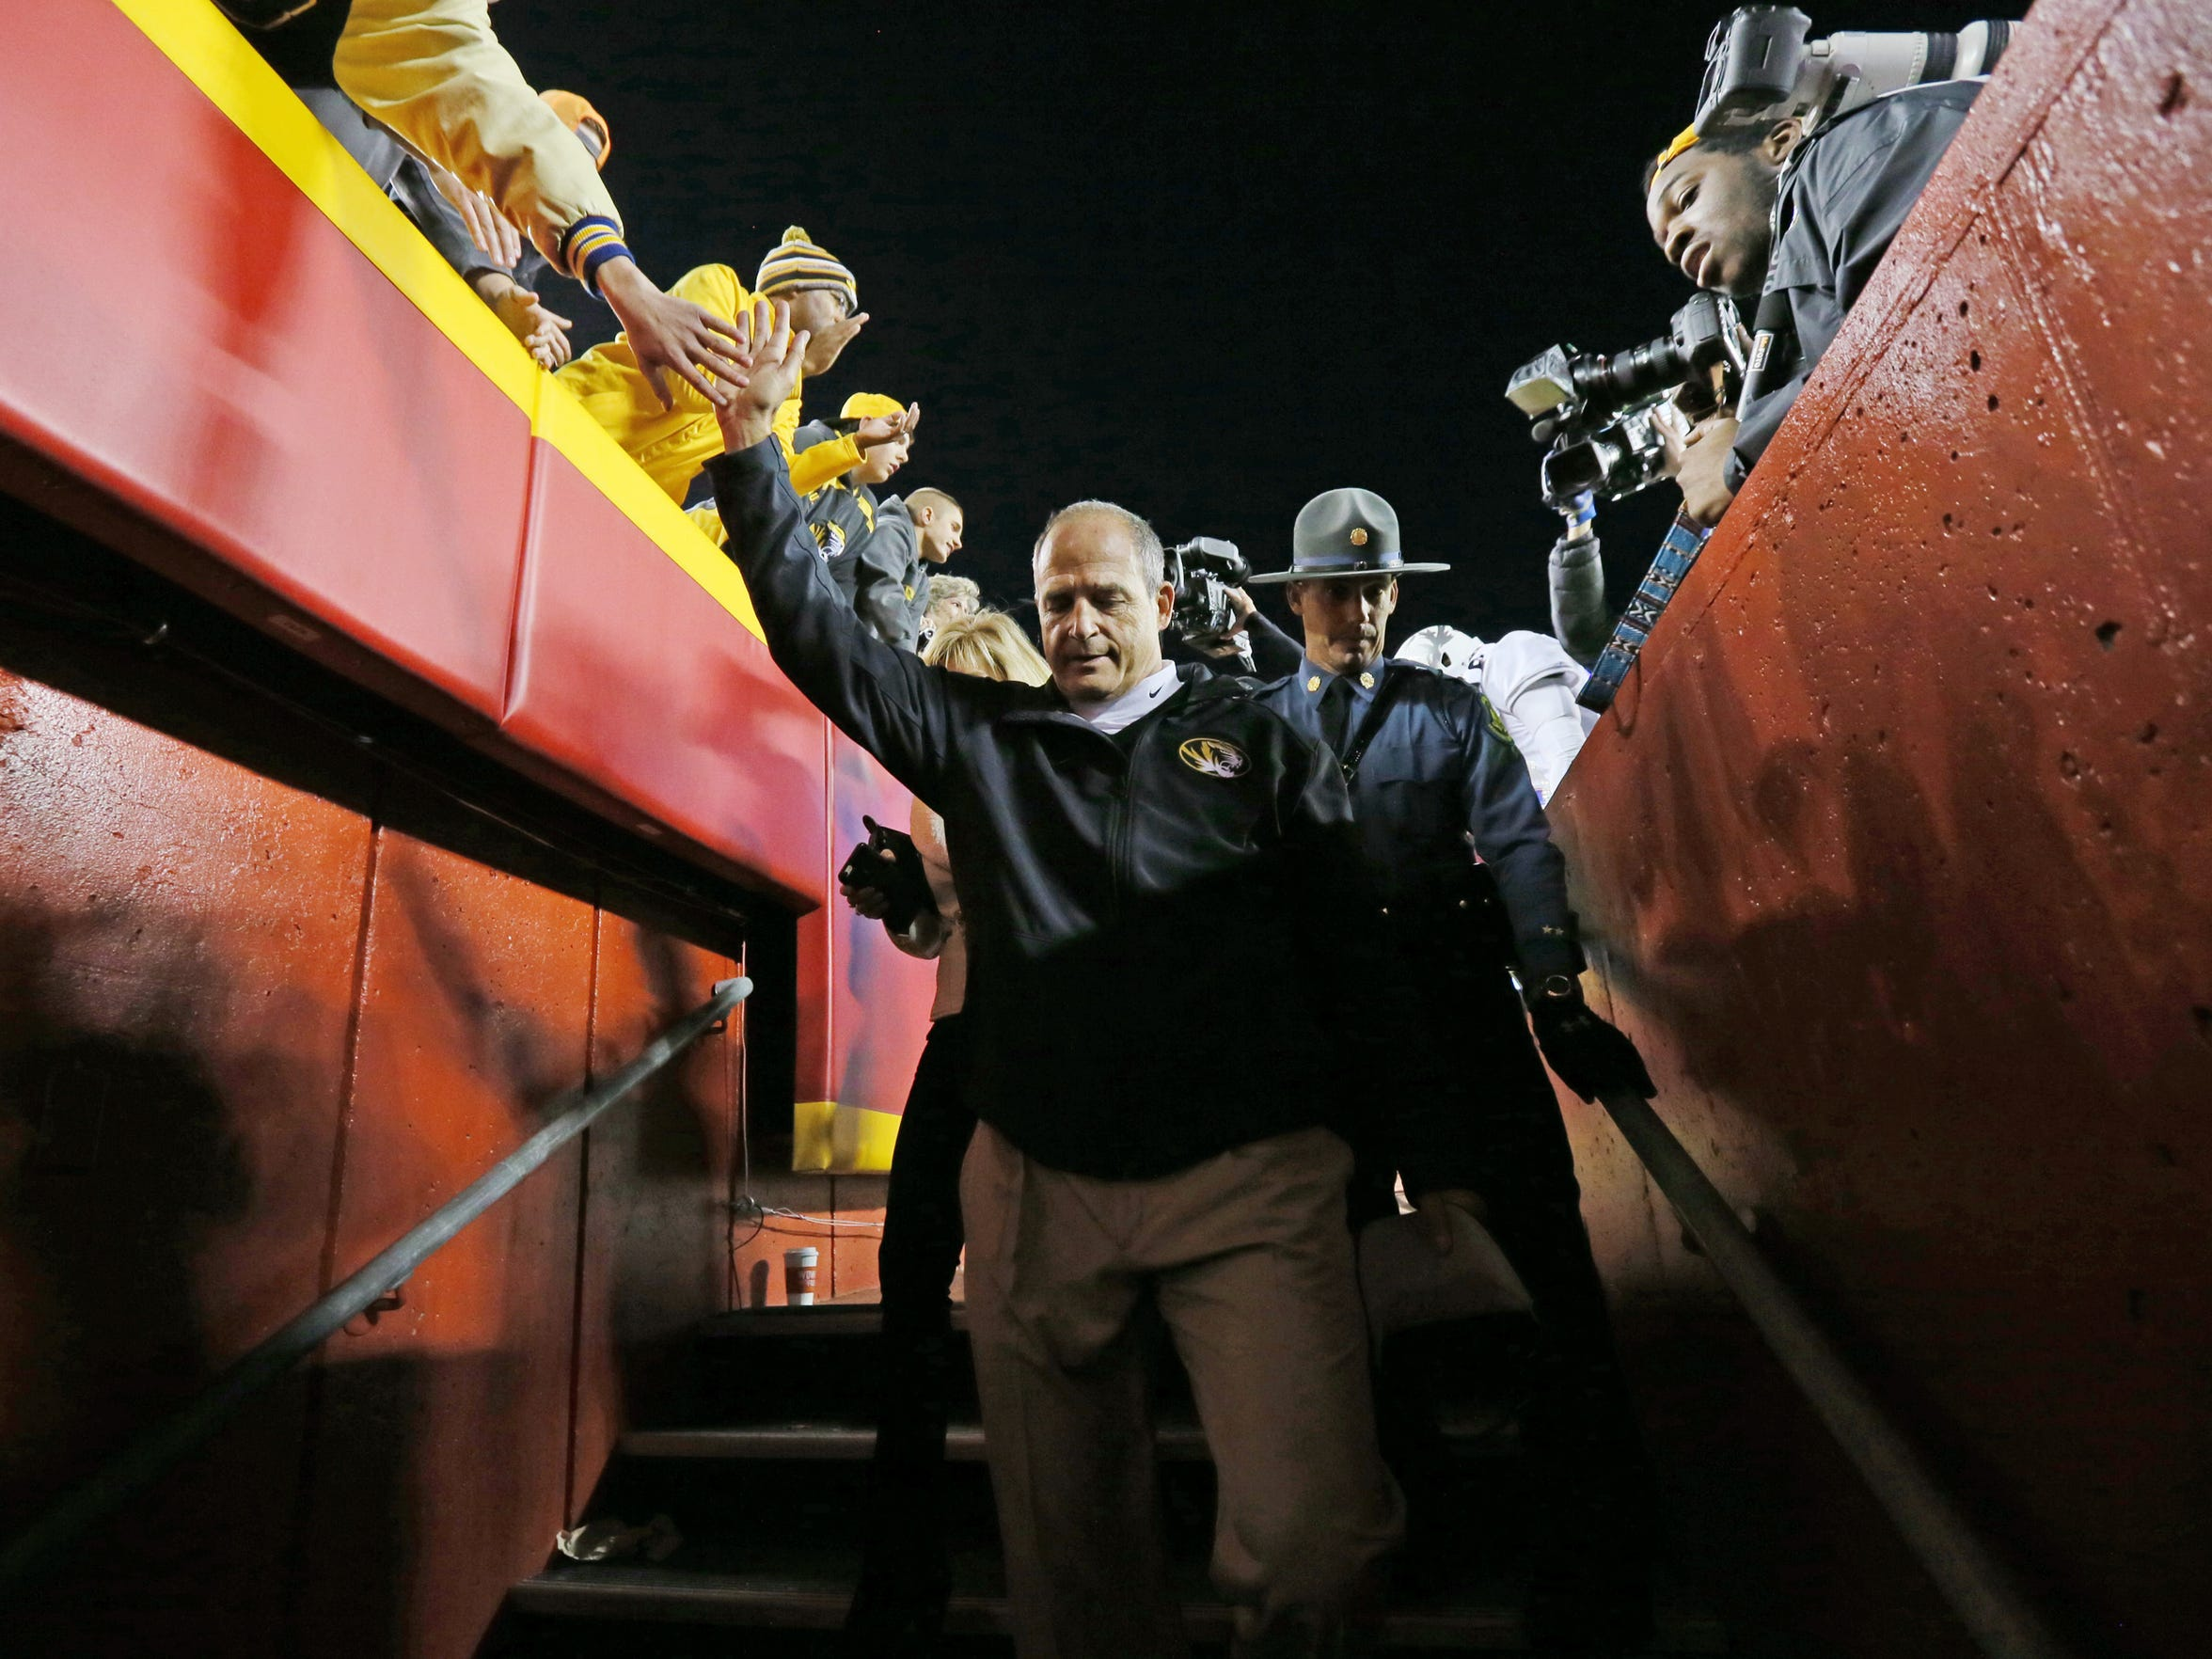 Missouri coach Gary Pinkel leaves the playing field after his team beat Missouri Saturday. Pinkel announced his retirement earlier in the week, effective at the end of the season.